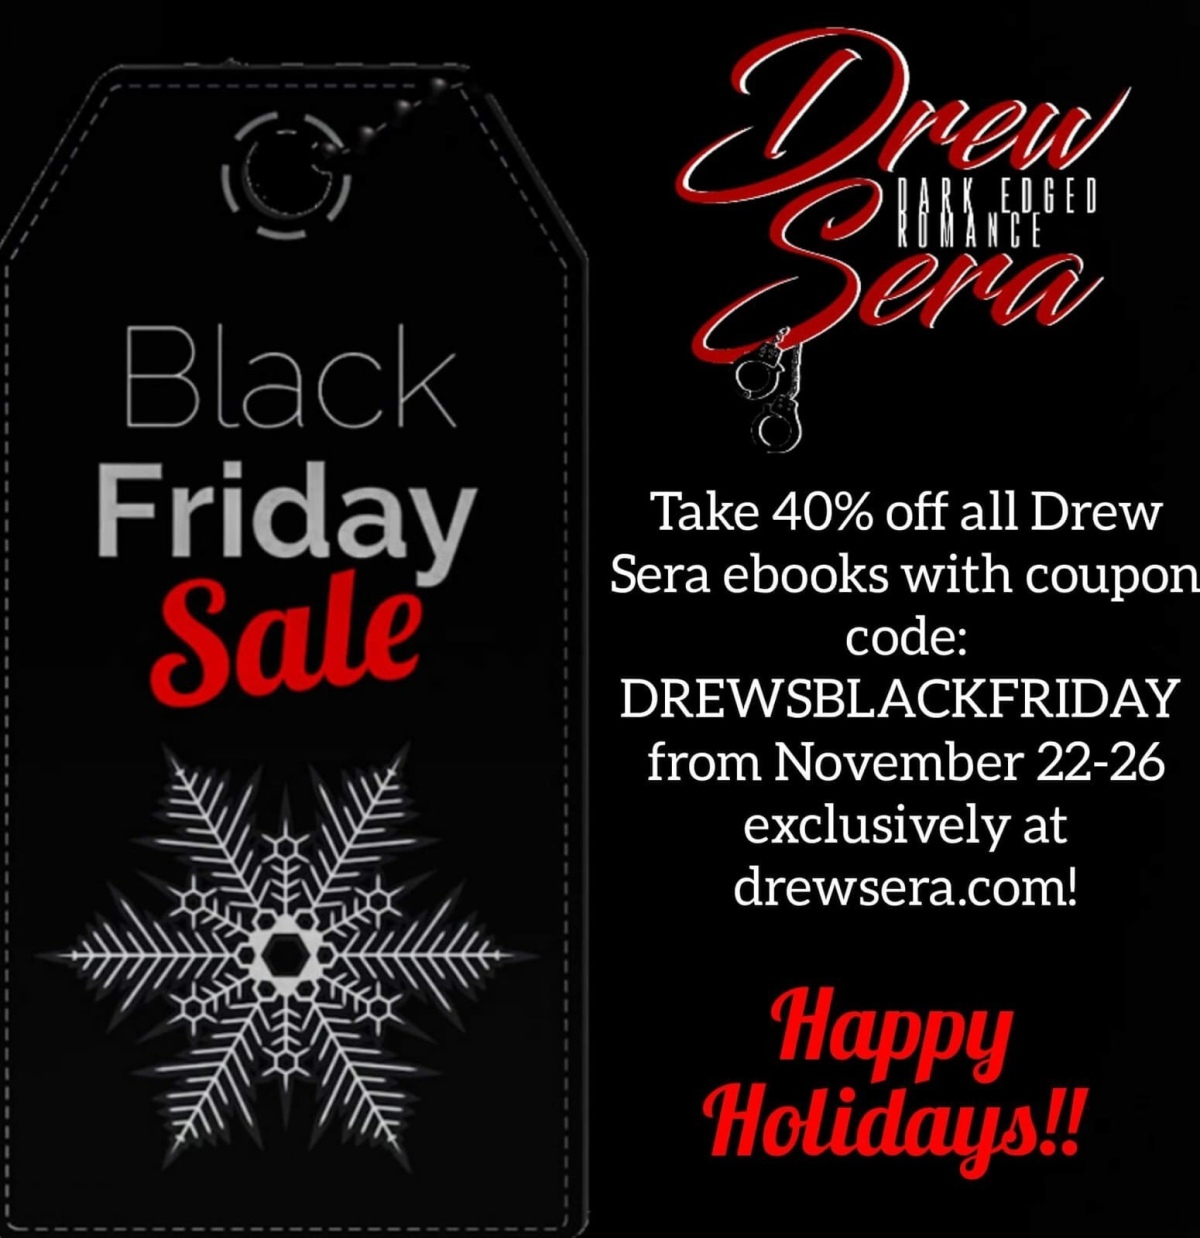 Save 40% on Drew Sera's Book Nov 22-26